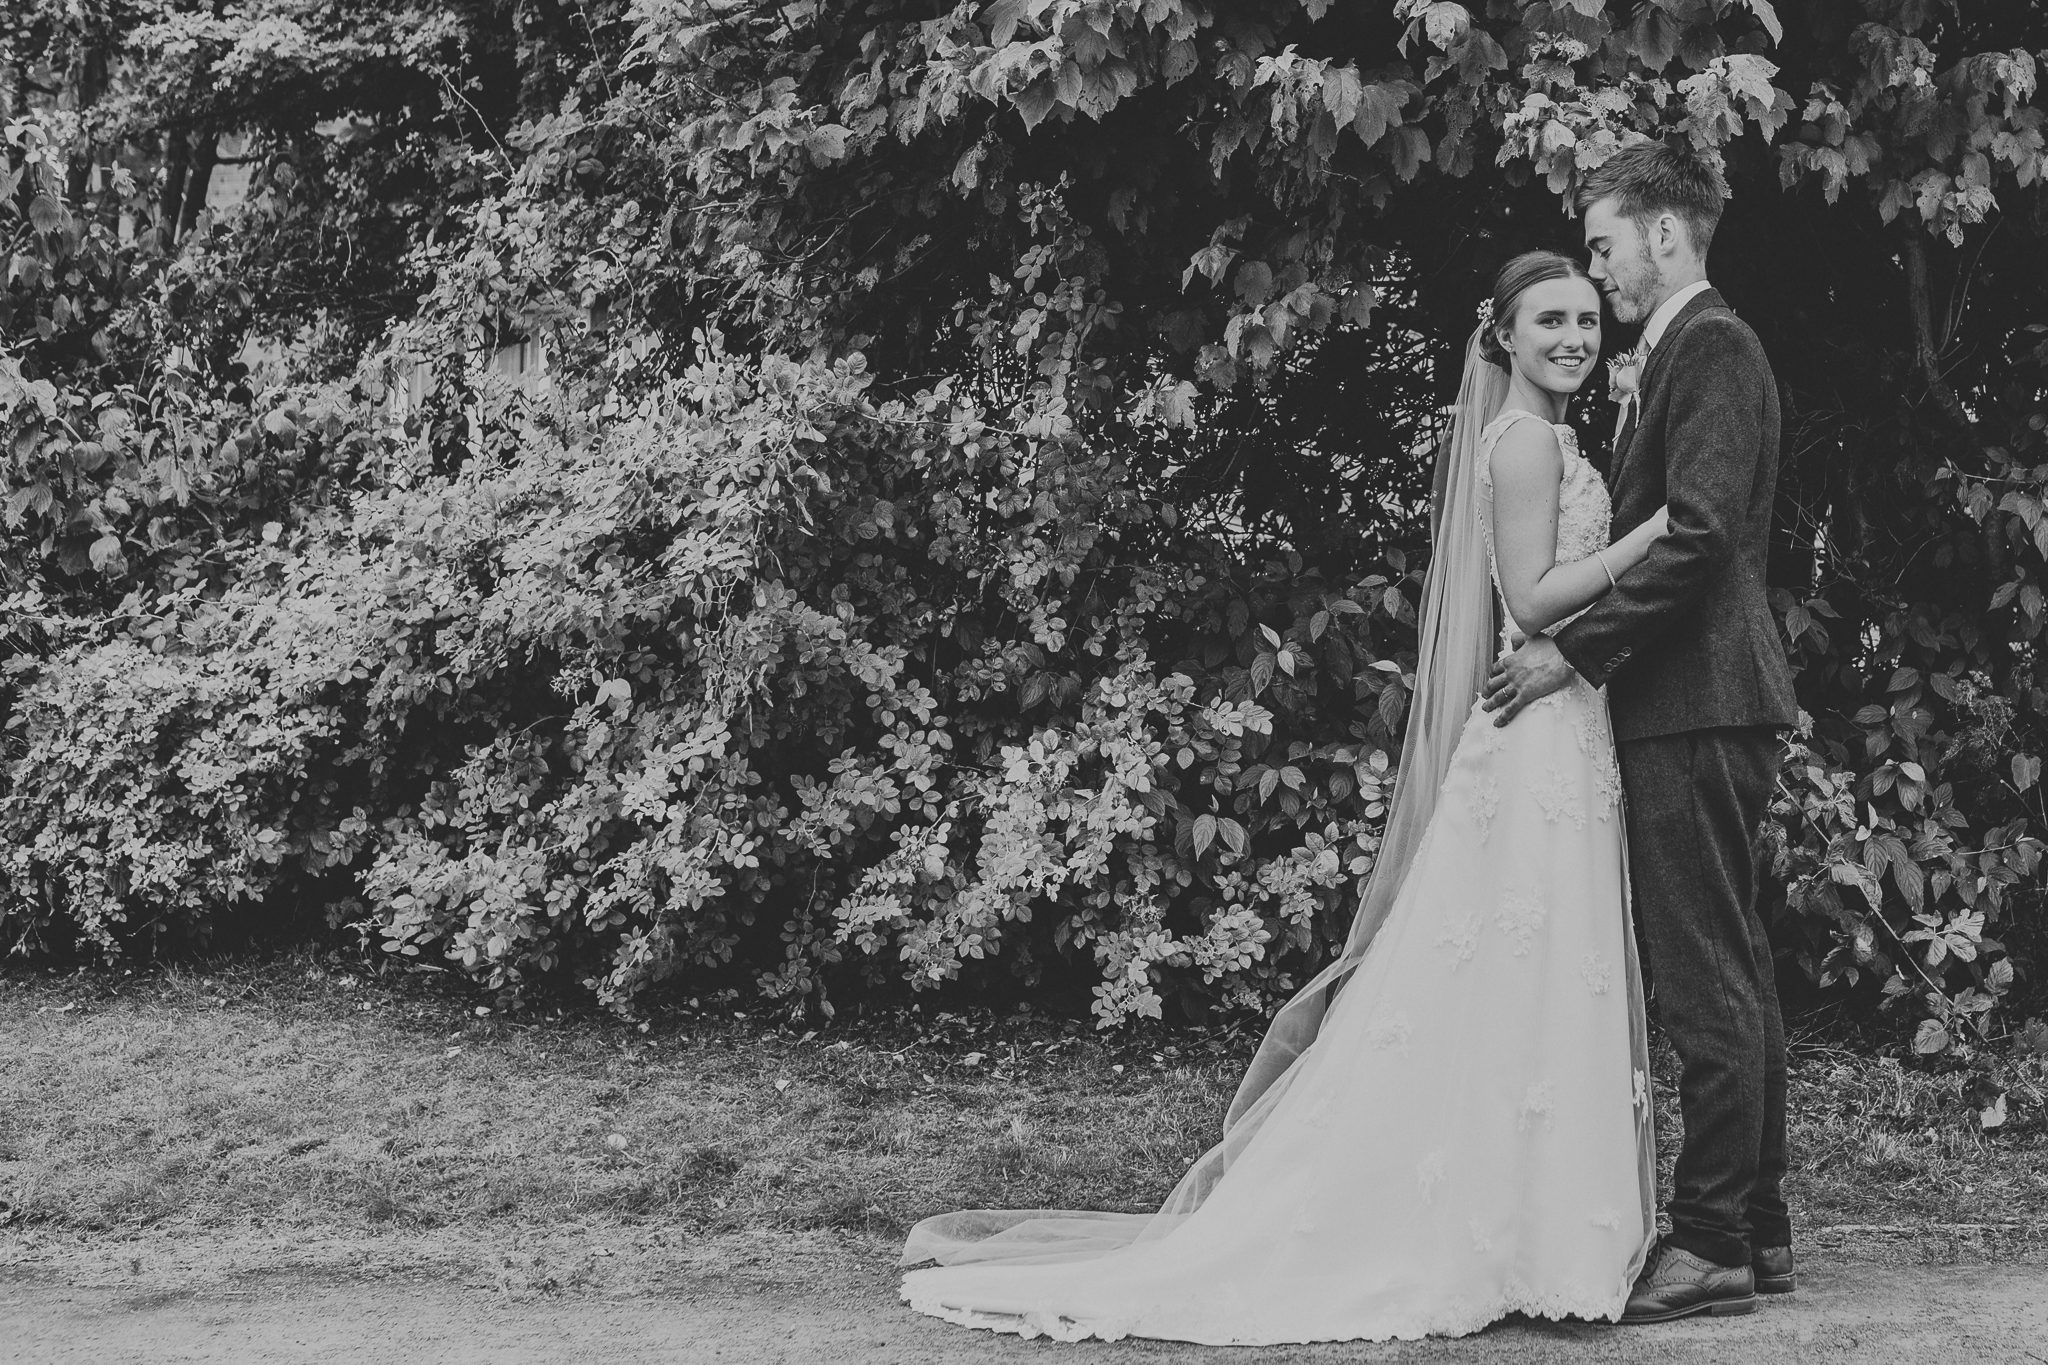 Jess and Ben - Liverpool wedding - black and white, bride and groom portrait